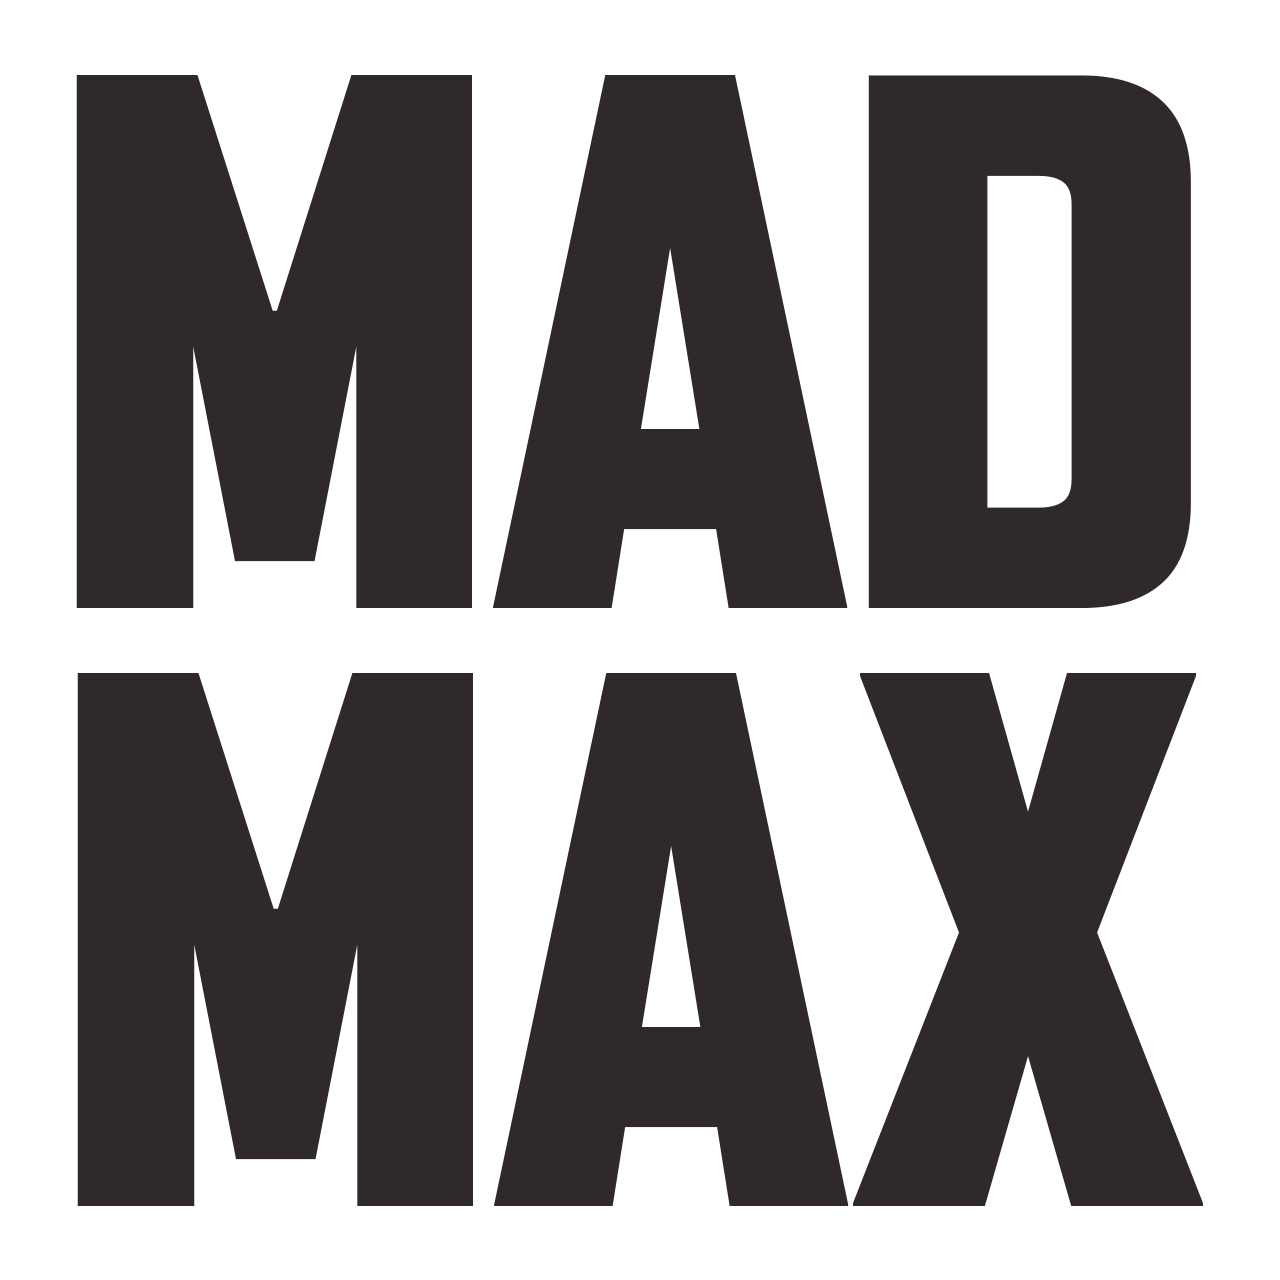 File:Mad Max (logo).png - Mad Max PNG